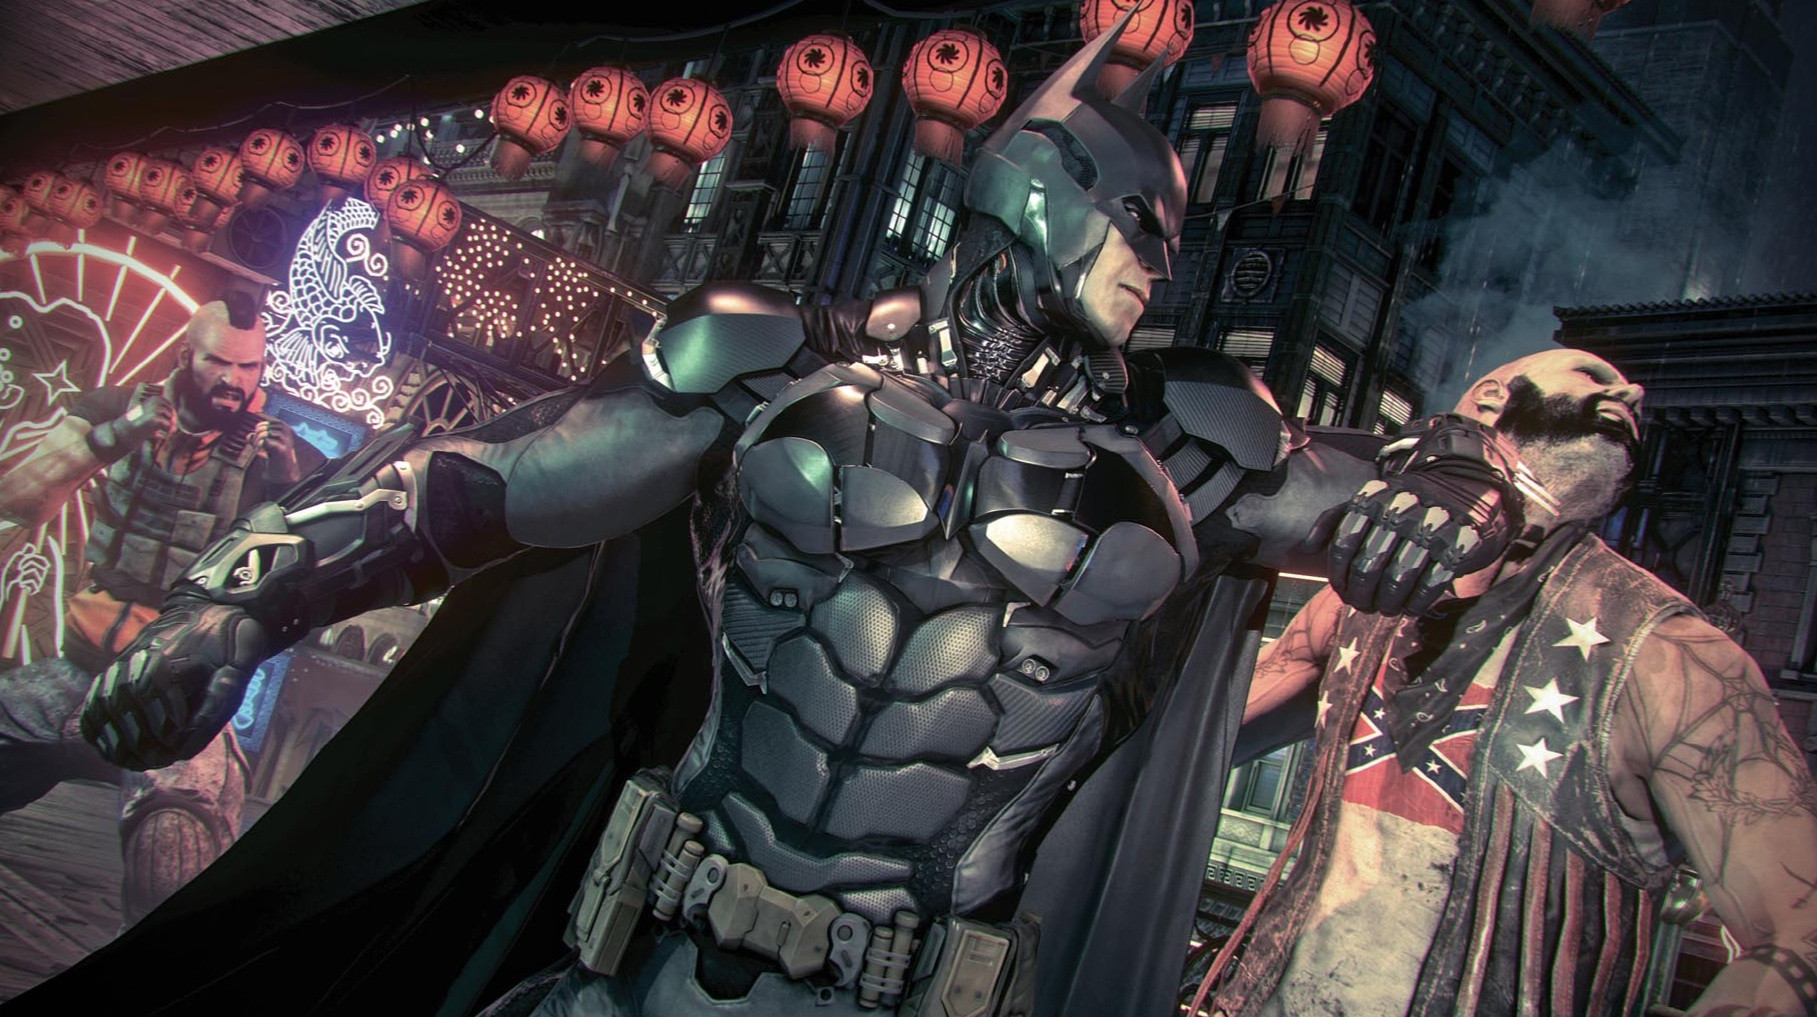 New Batman Arkham Knight Screens Out Show Gotham City